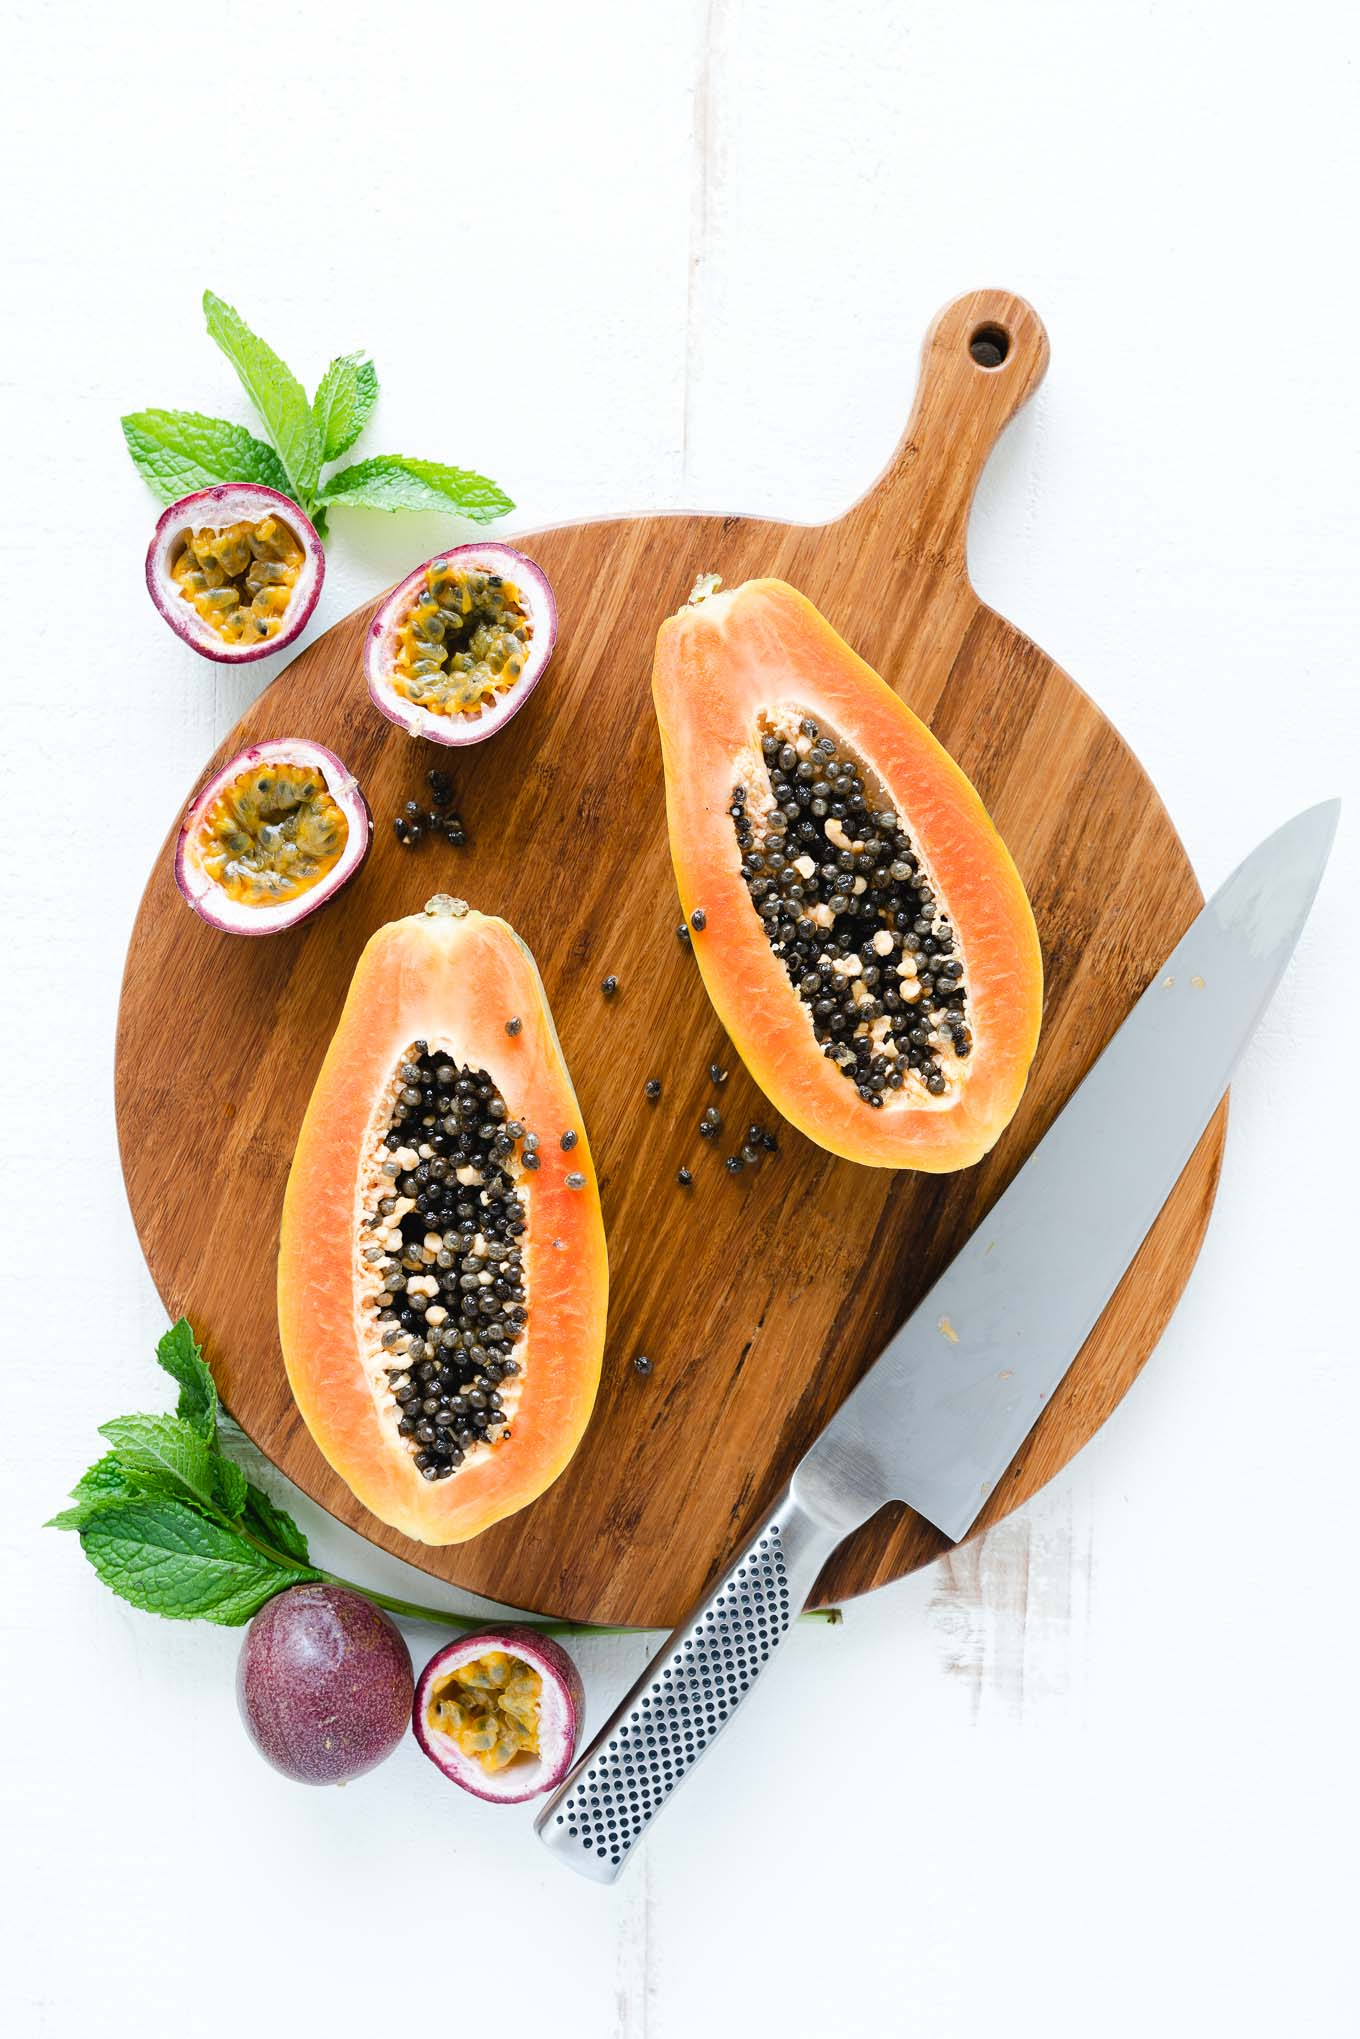 Tropical Papaya Bowls - Papaya Cut in Half with Passion Fruit